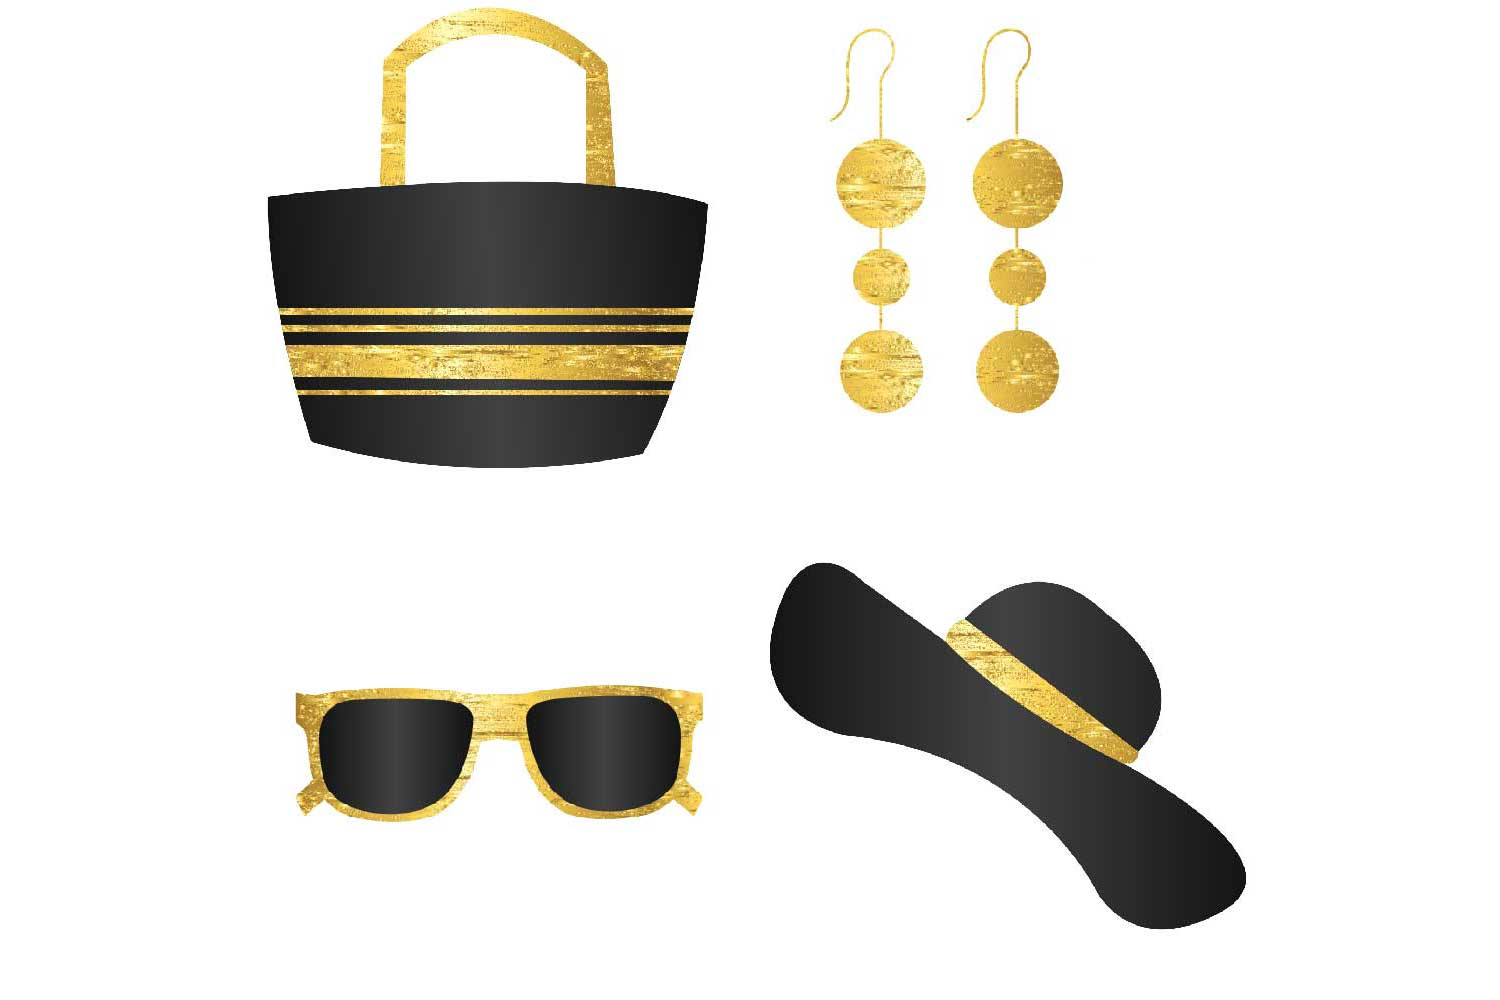 Classy Summer Accessories Clipart example image 2